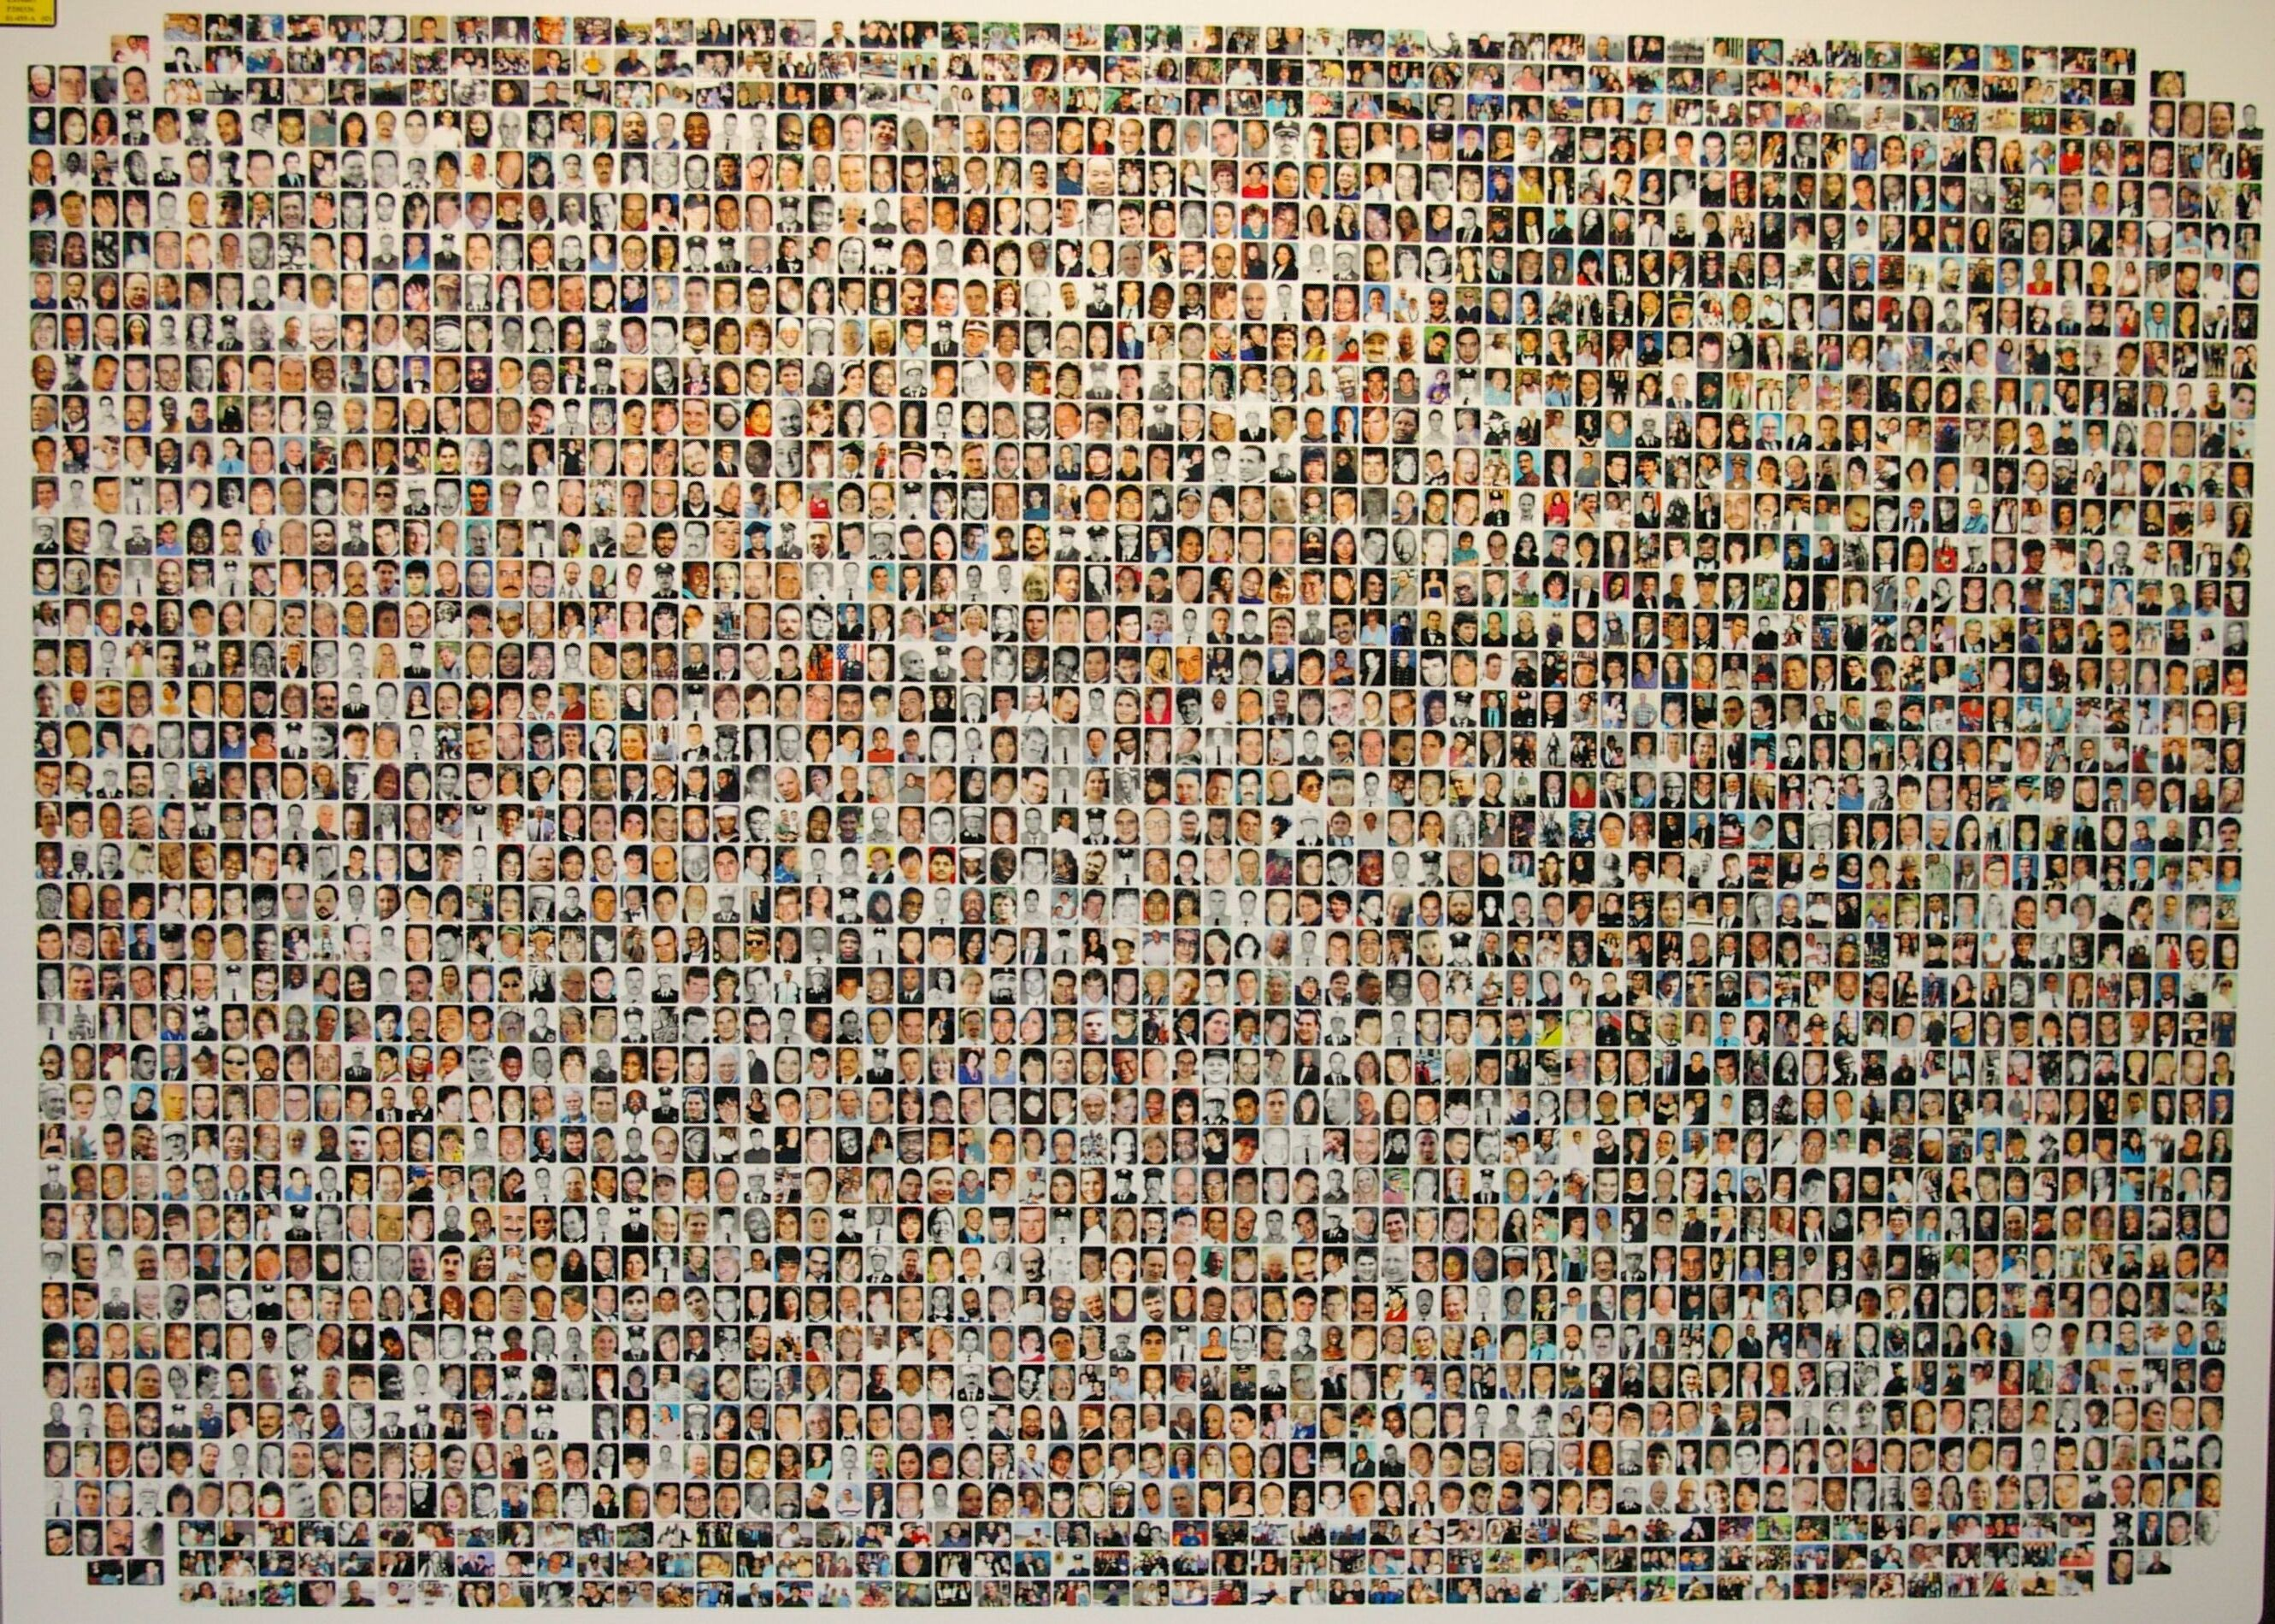 a recollection of the events of the september 11th attacks in the us Yet for all of the talk about 9/11, many elements of the attacks and the actions  leading up to them have receded from the public memory  to piece together the  events on board each plane and how the hijackings occurred.